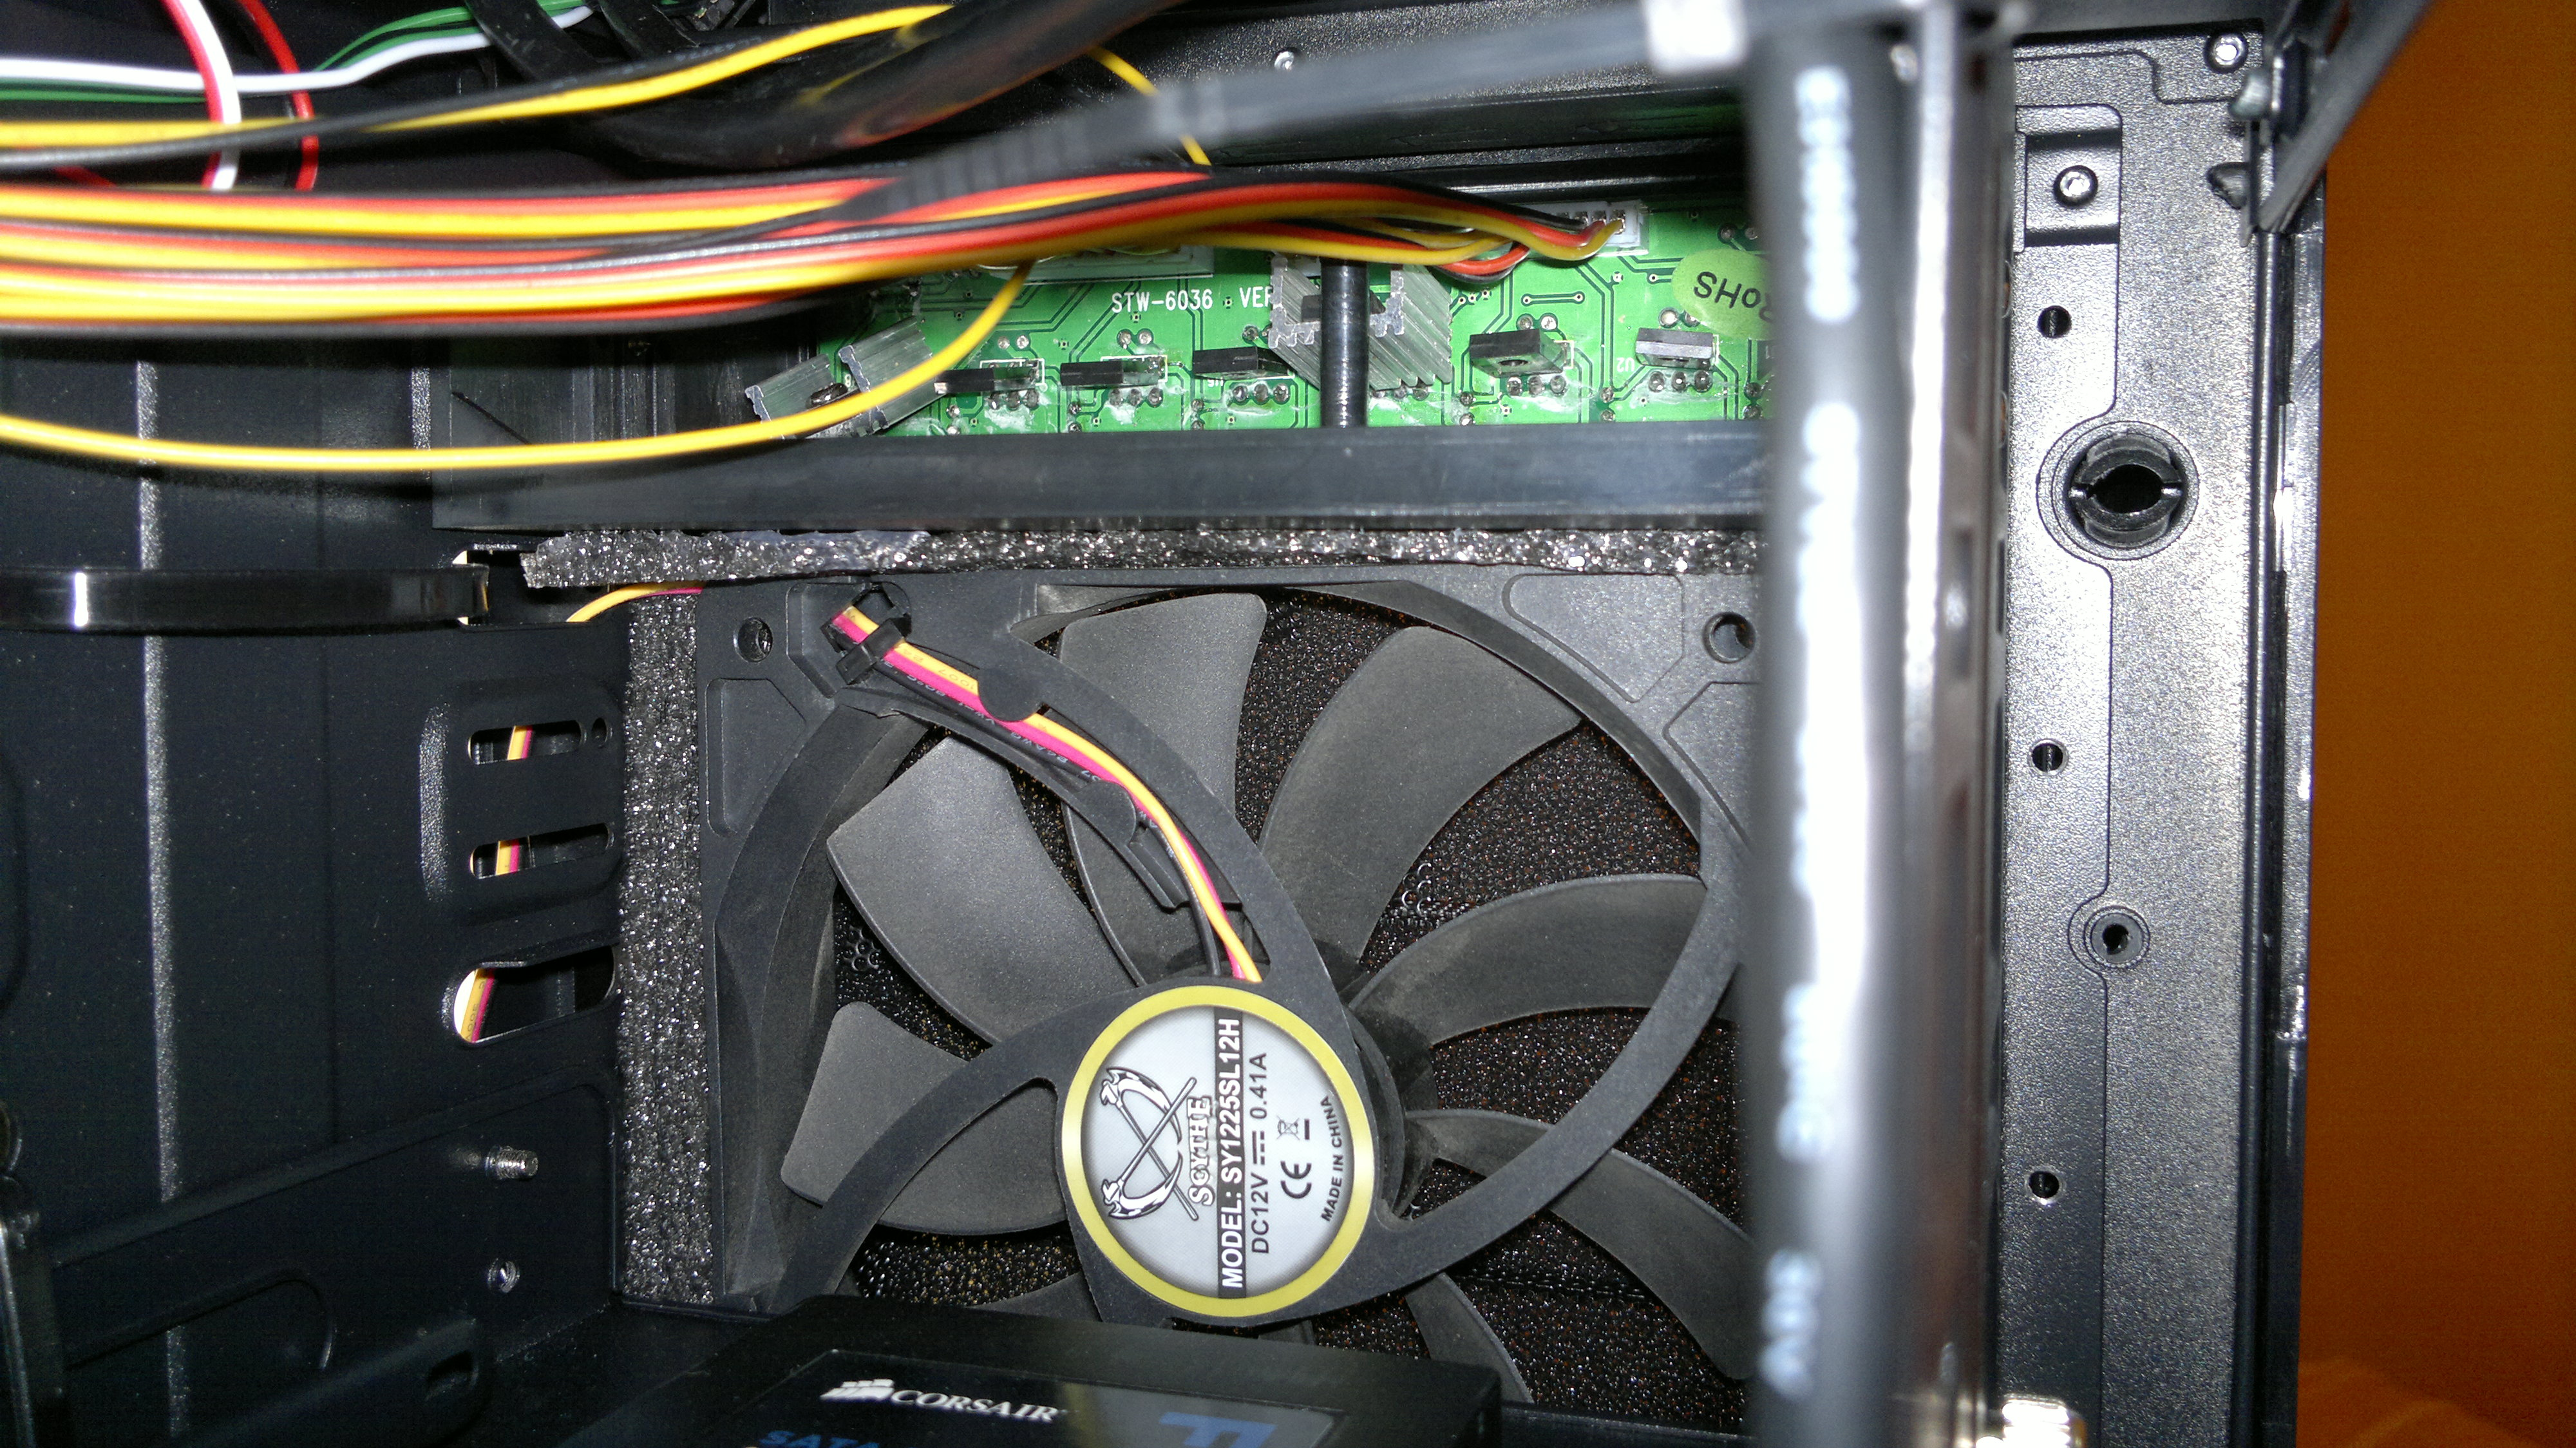 Frontal upper fan and back of the fan controller, lots of cables...